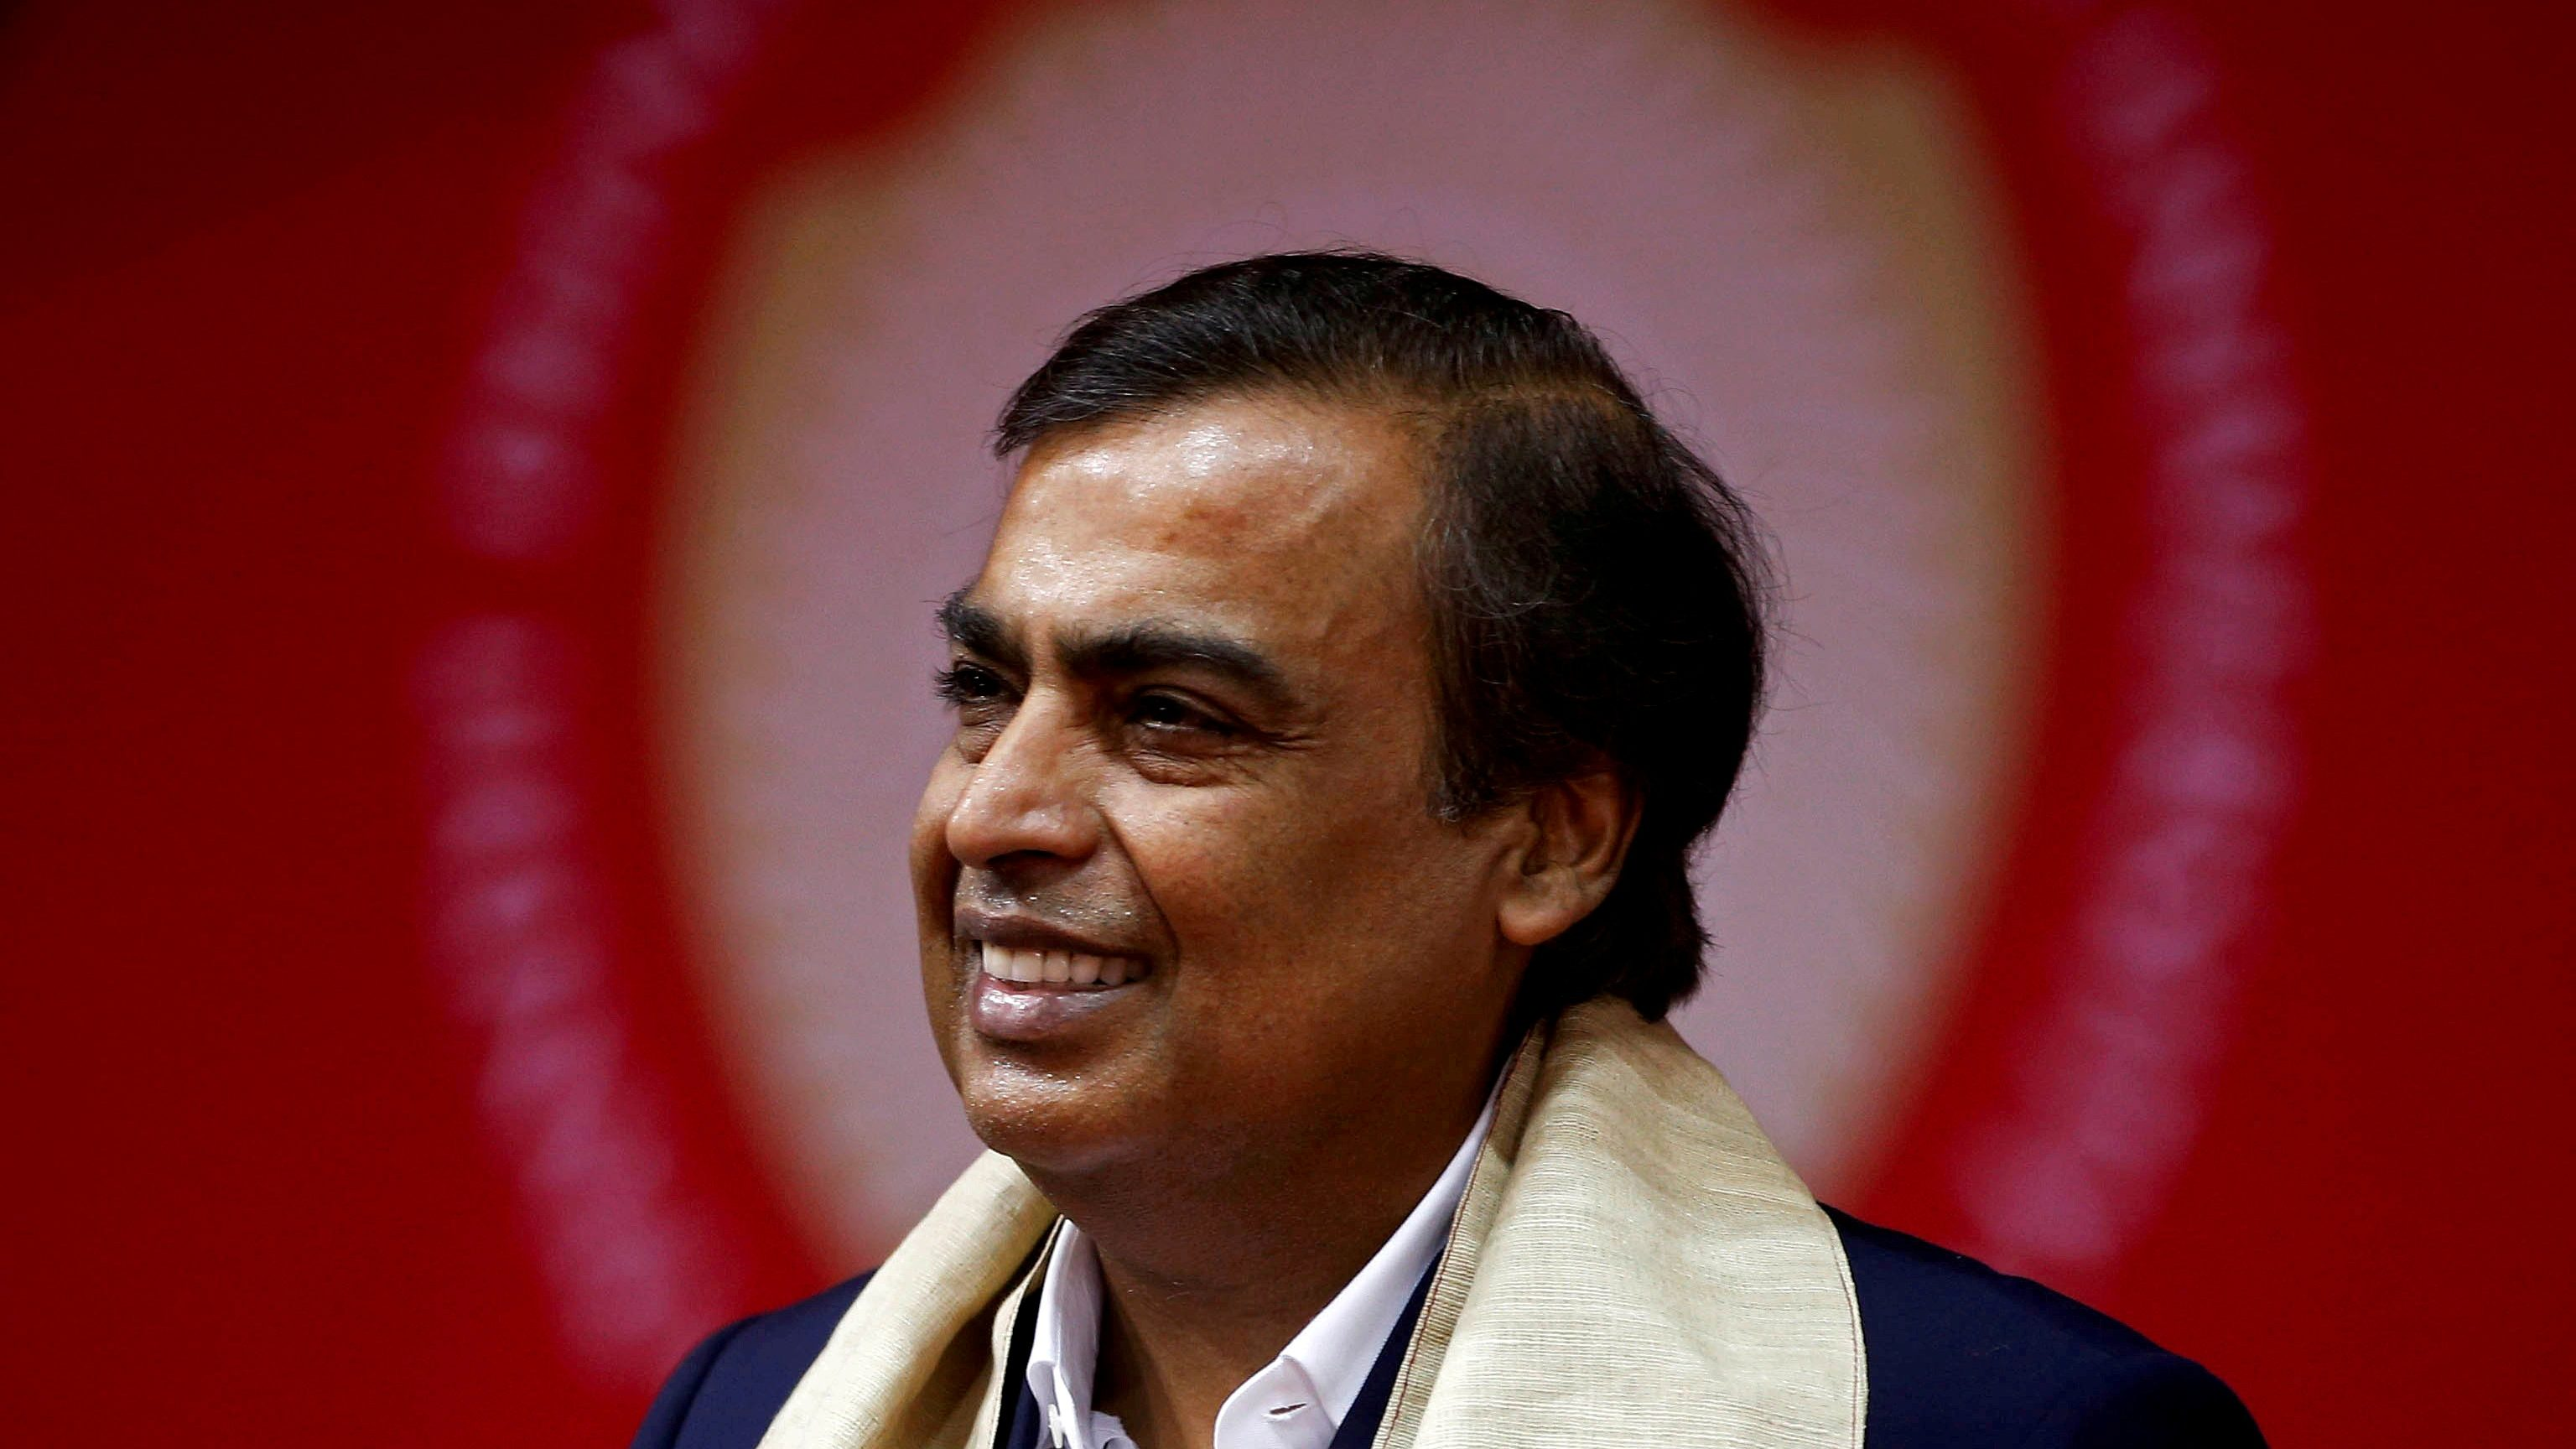 Mukesh Ambani, Chairman and Managing Director of Reliance Industries standing in front of a red banner